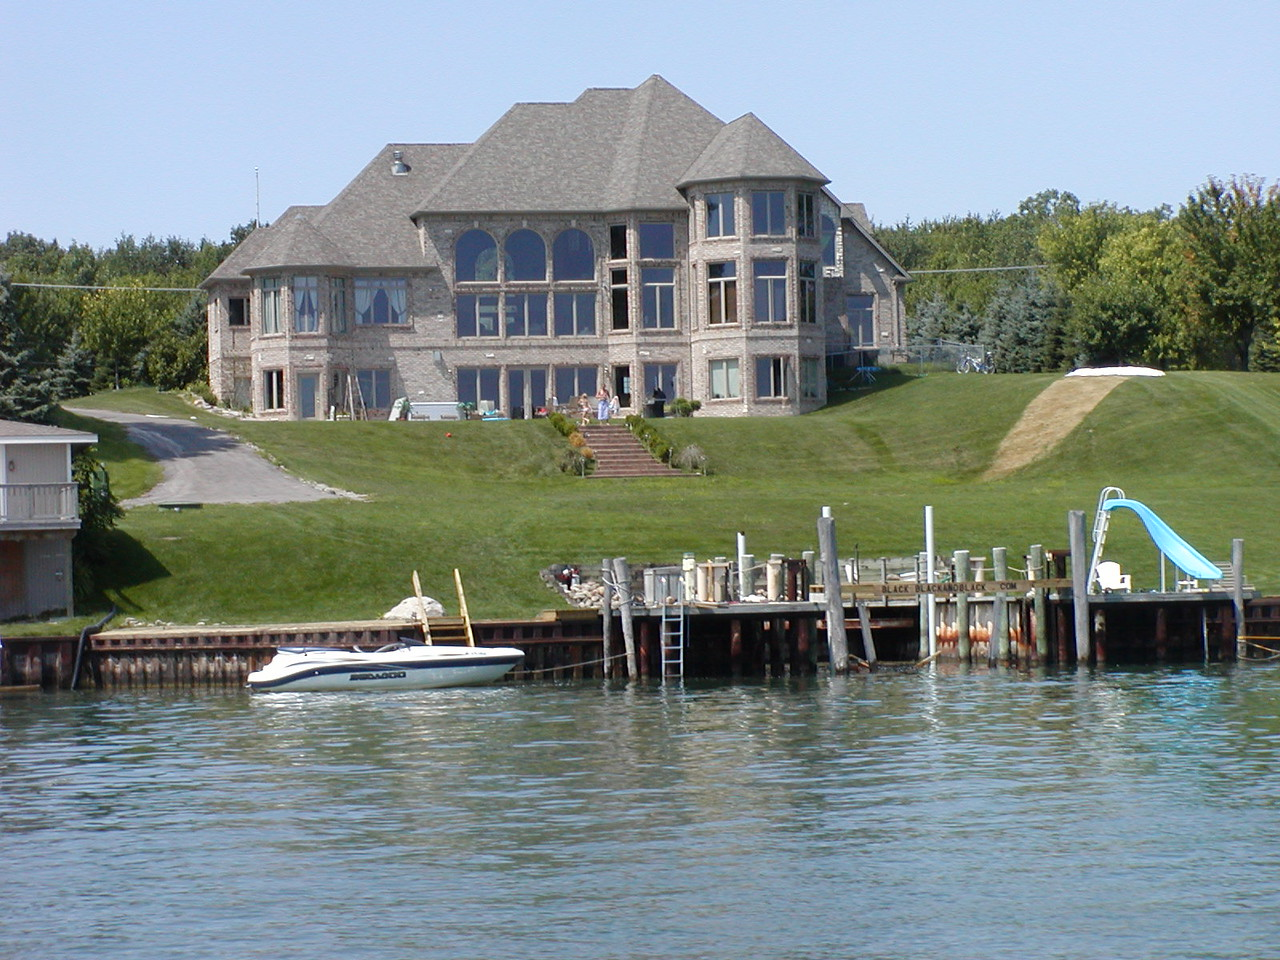 Properties on the American side of the St. Clair river range from small beach-front cabins to stately mansions.